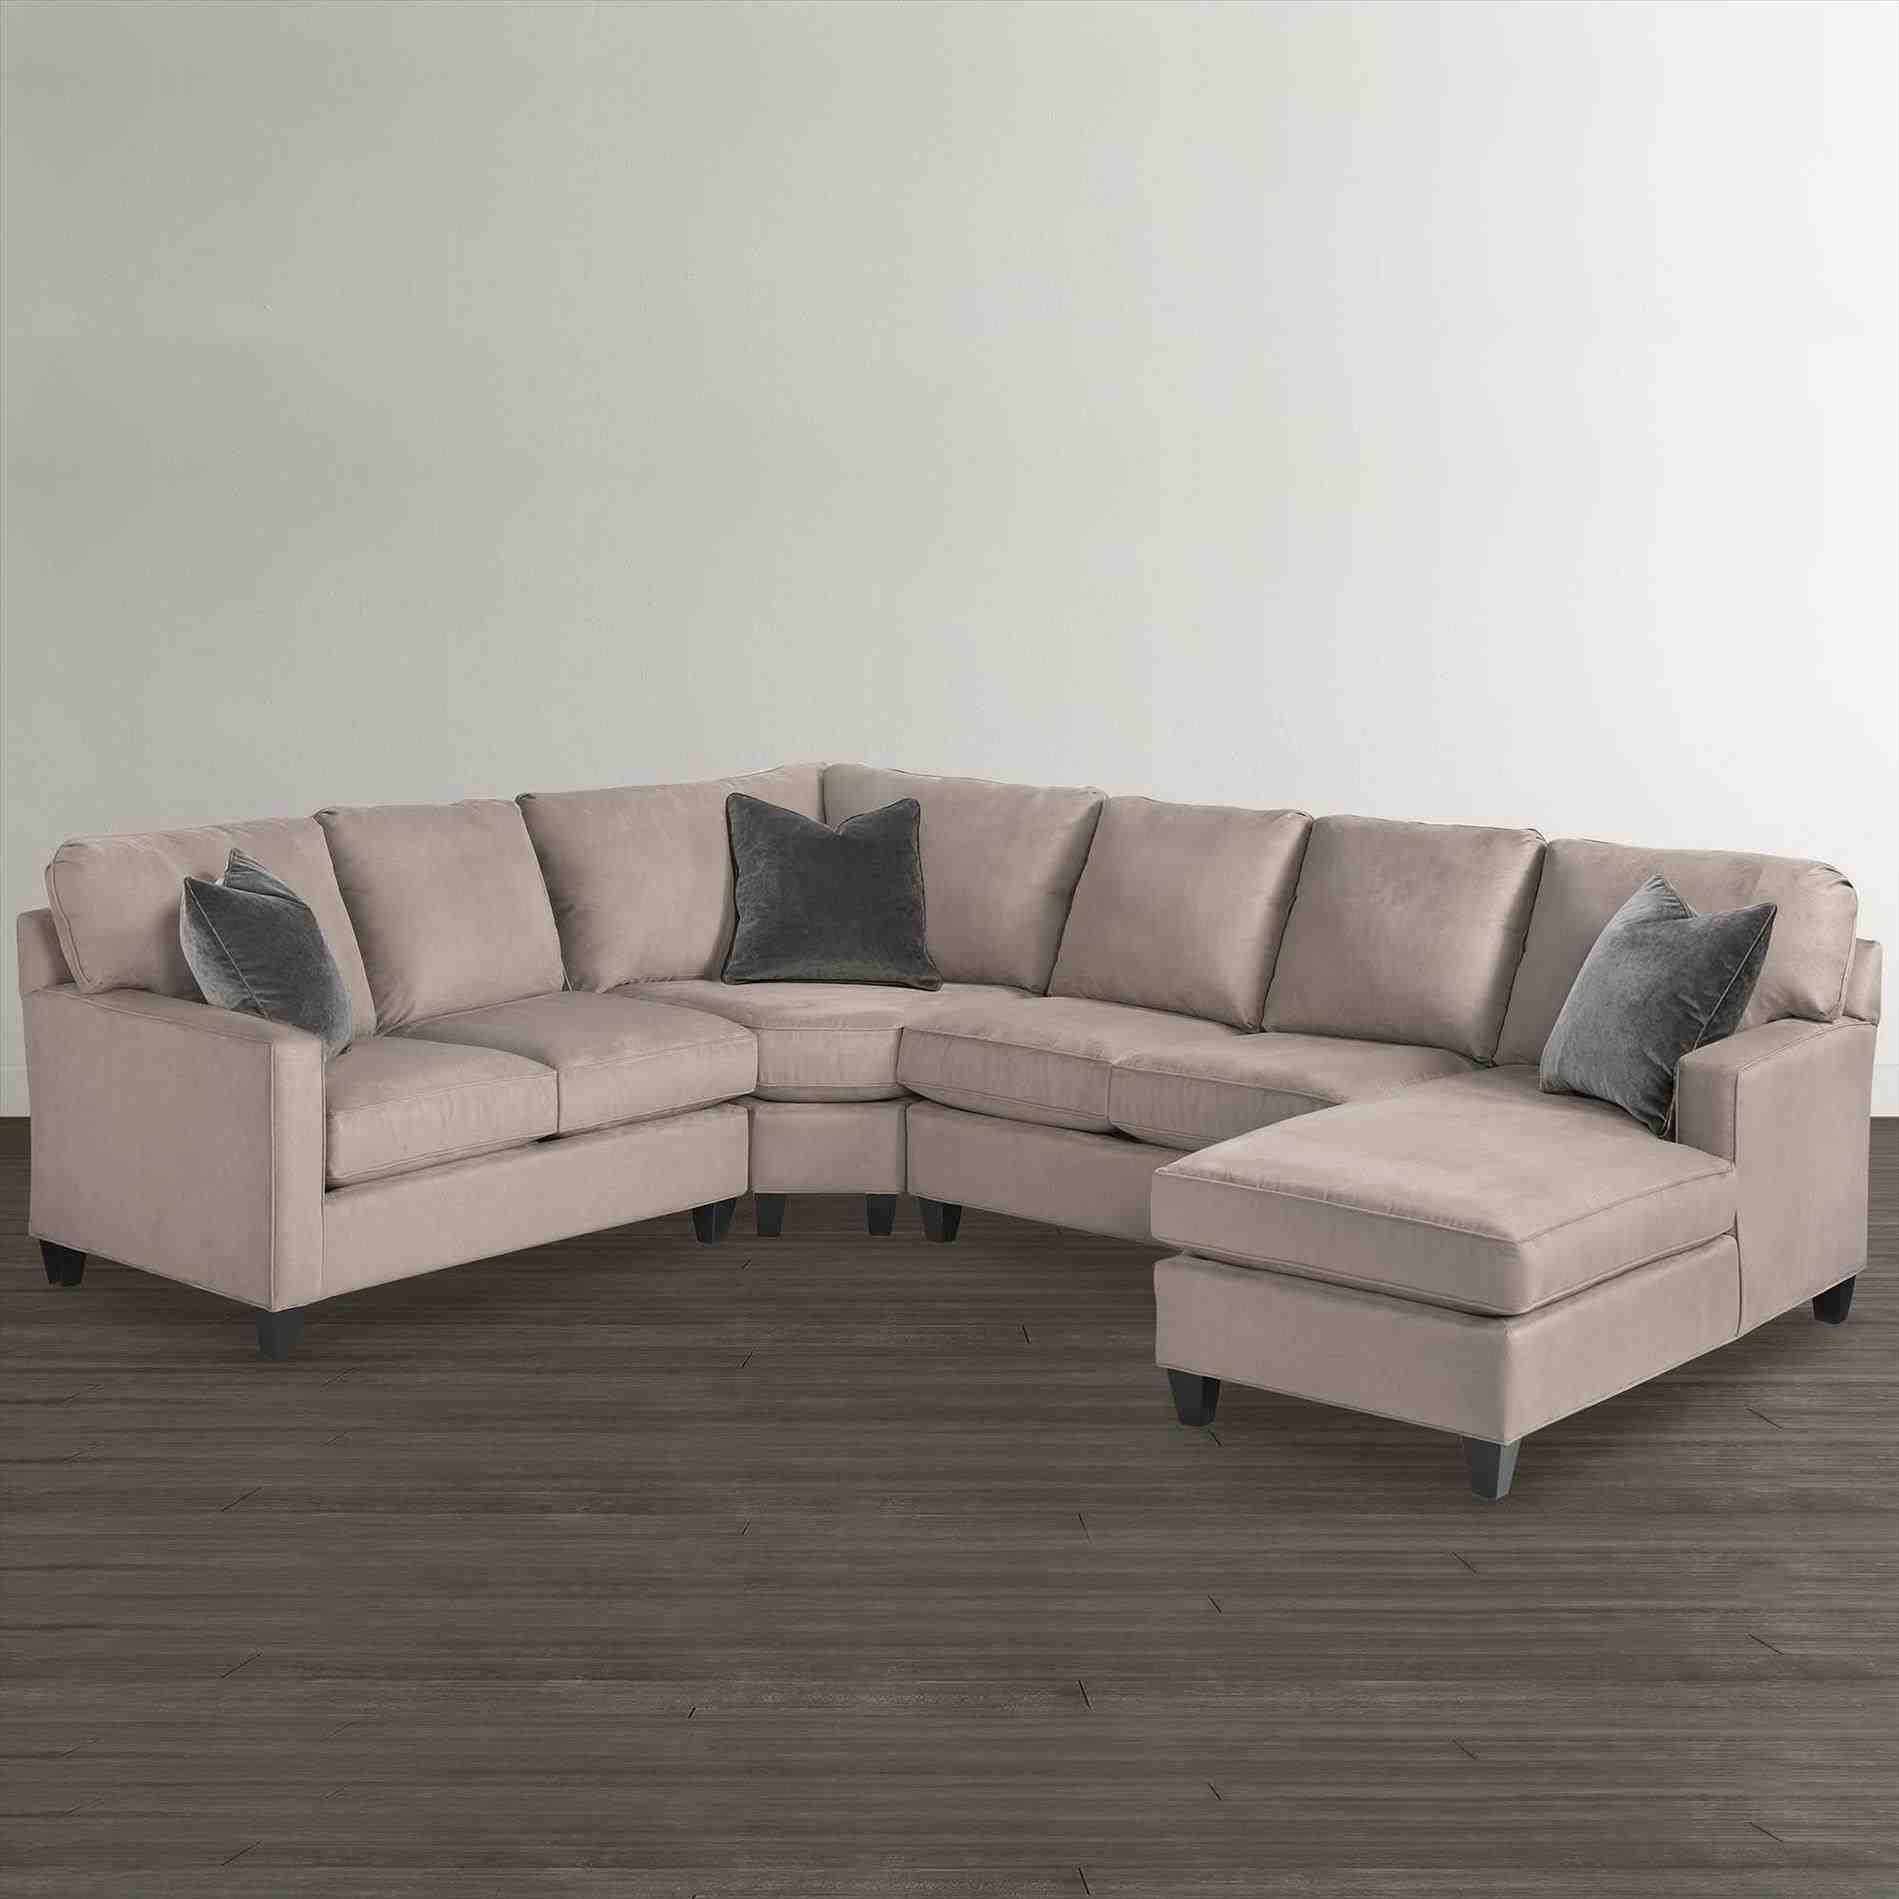 Cheap Sectionals In Ri Full Size Of Sofa U Shaped Sectional Cheap Sectional Sofas Under Sofa Bed Design Cheap Bedroom Furniture Sets Cheap Bedroom Furniture